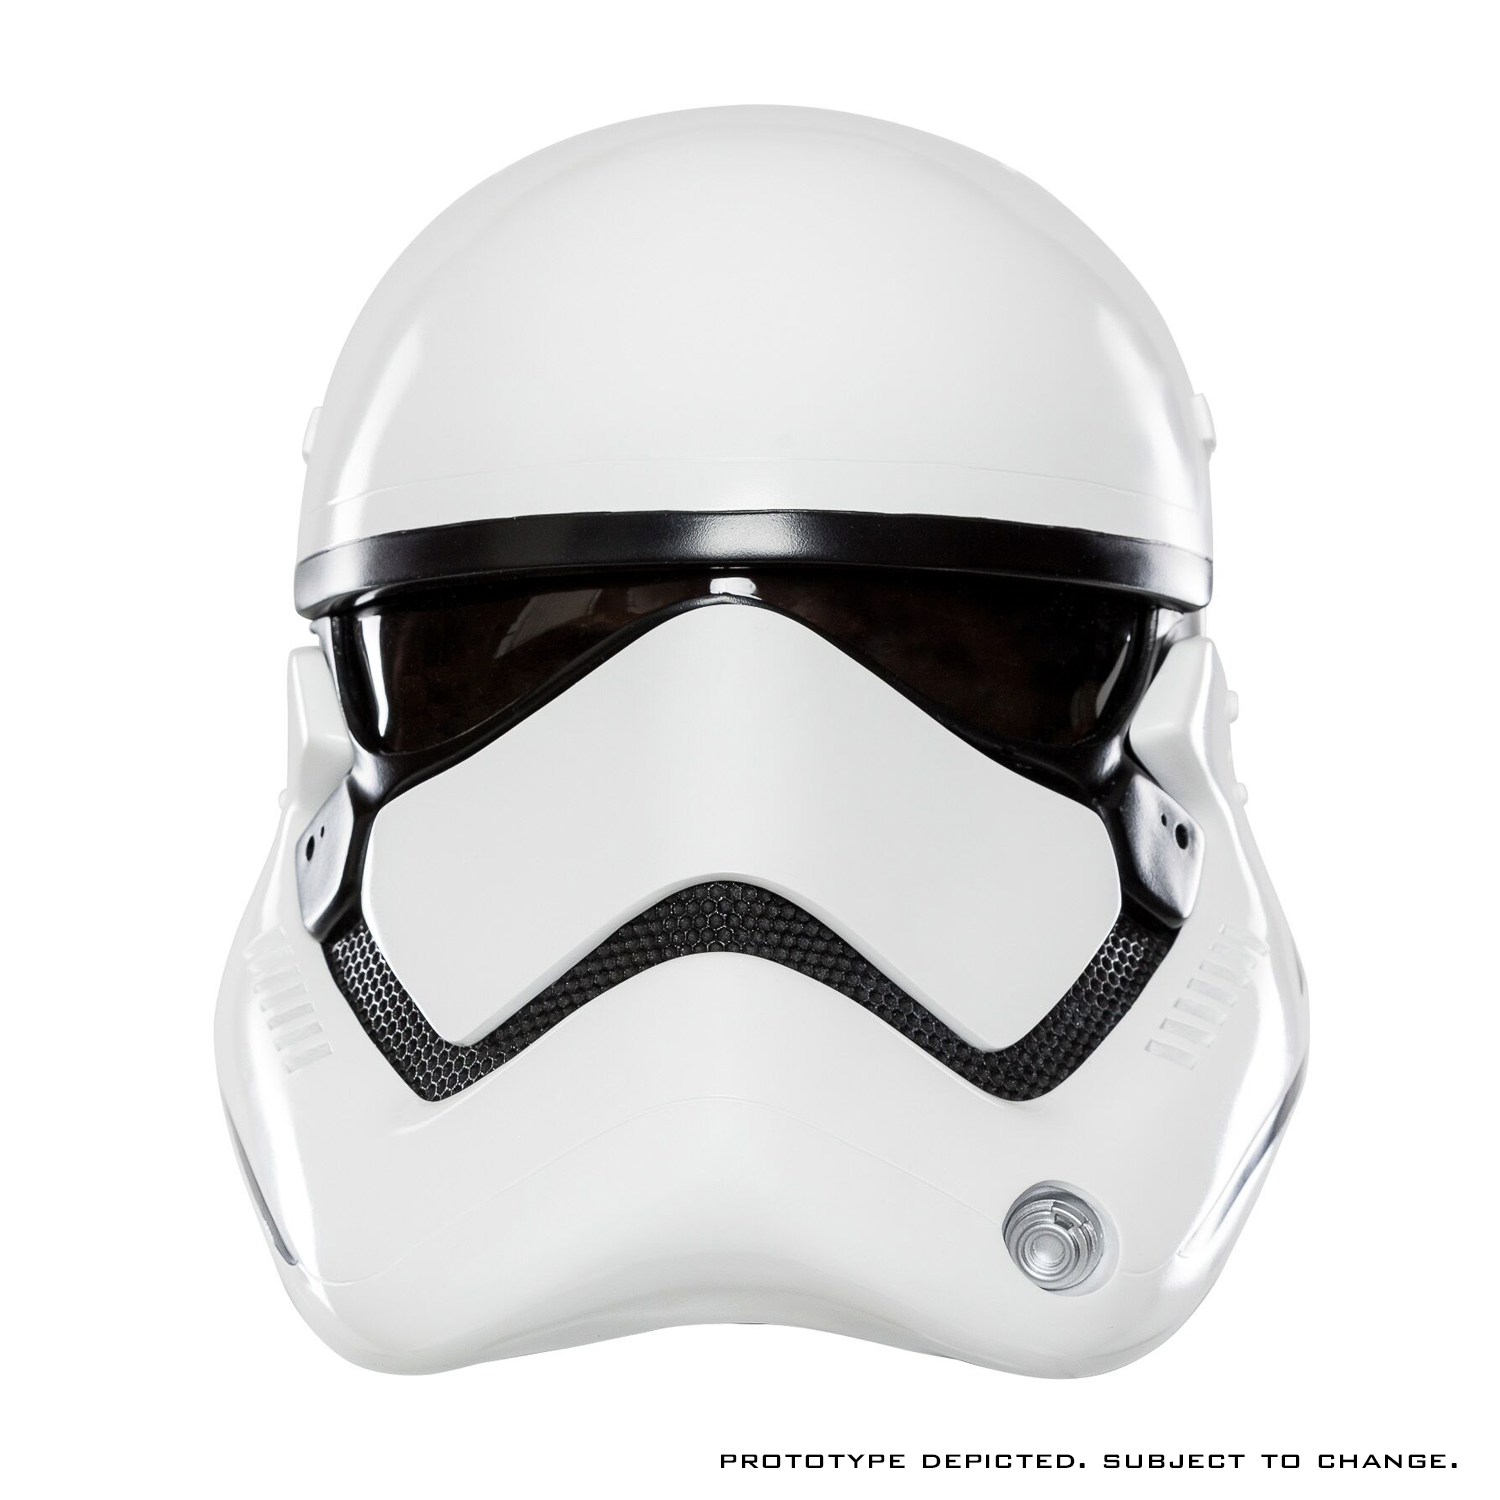 Star Wars The Force Awakens First Order Stormtrooper Helmet Accessory Anovos Productions Llc Star Wars Helmet Stormtrooper Helmet Star Wars Stormtrooper